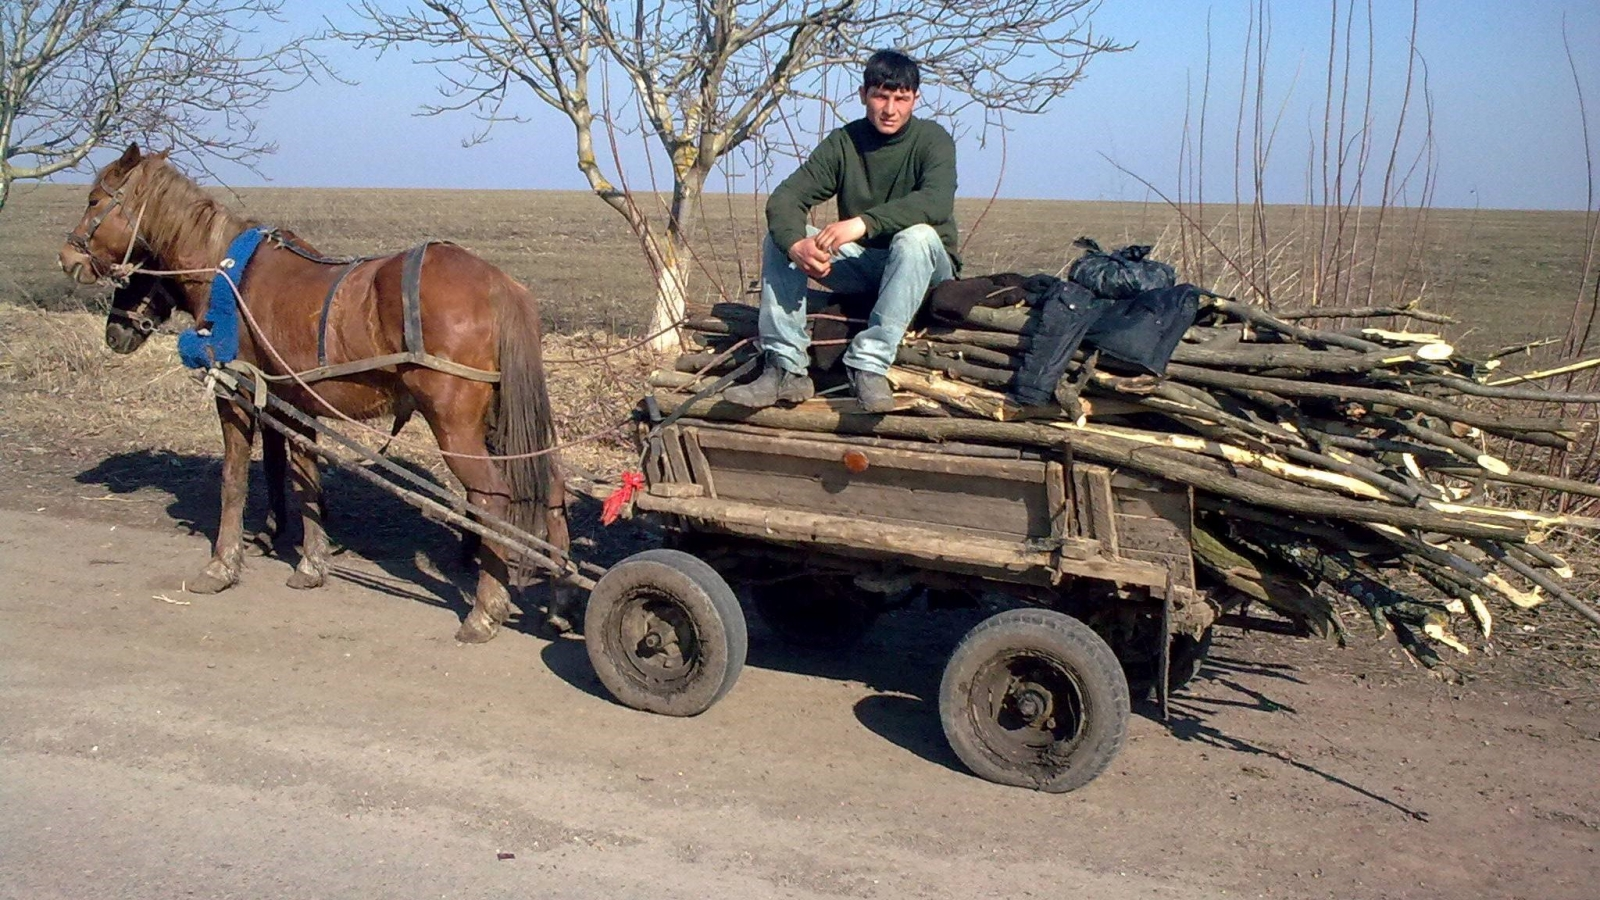 A villager, who collects fuelwood for his household. Soroca district, Moldova (Credit: FLEG programme)